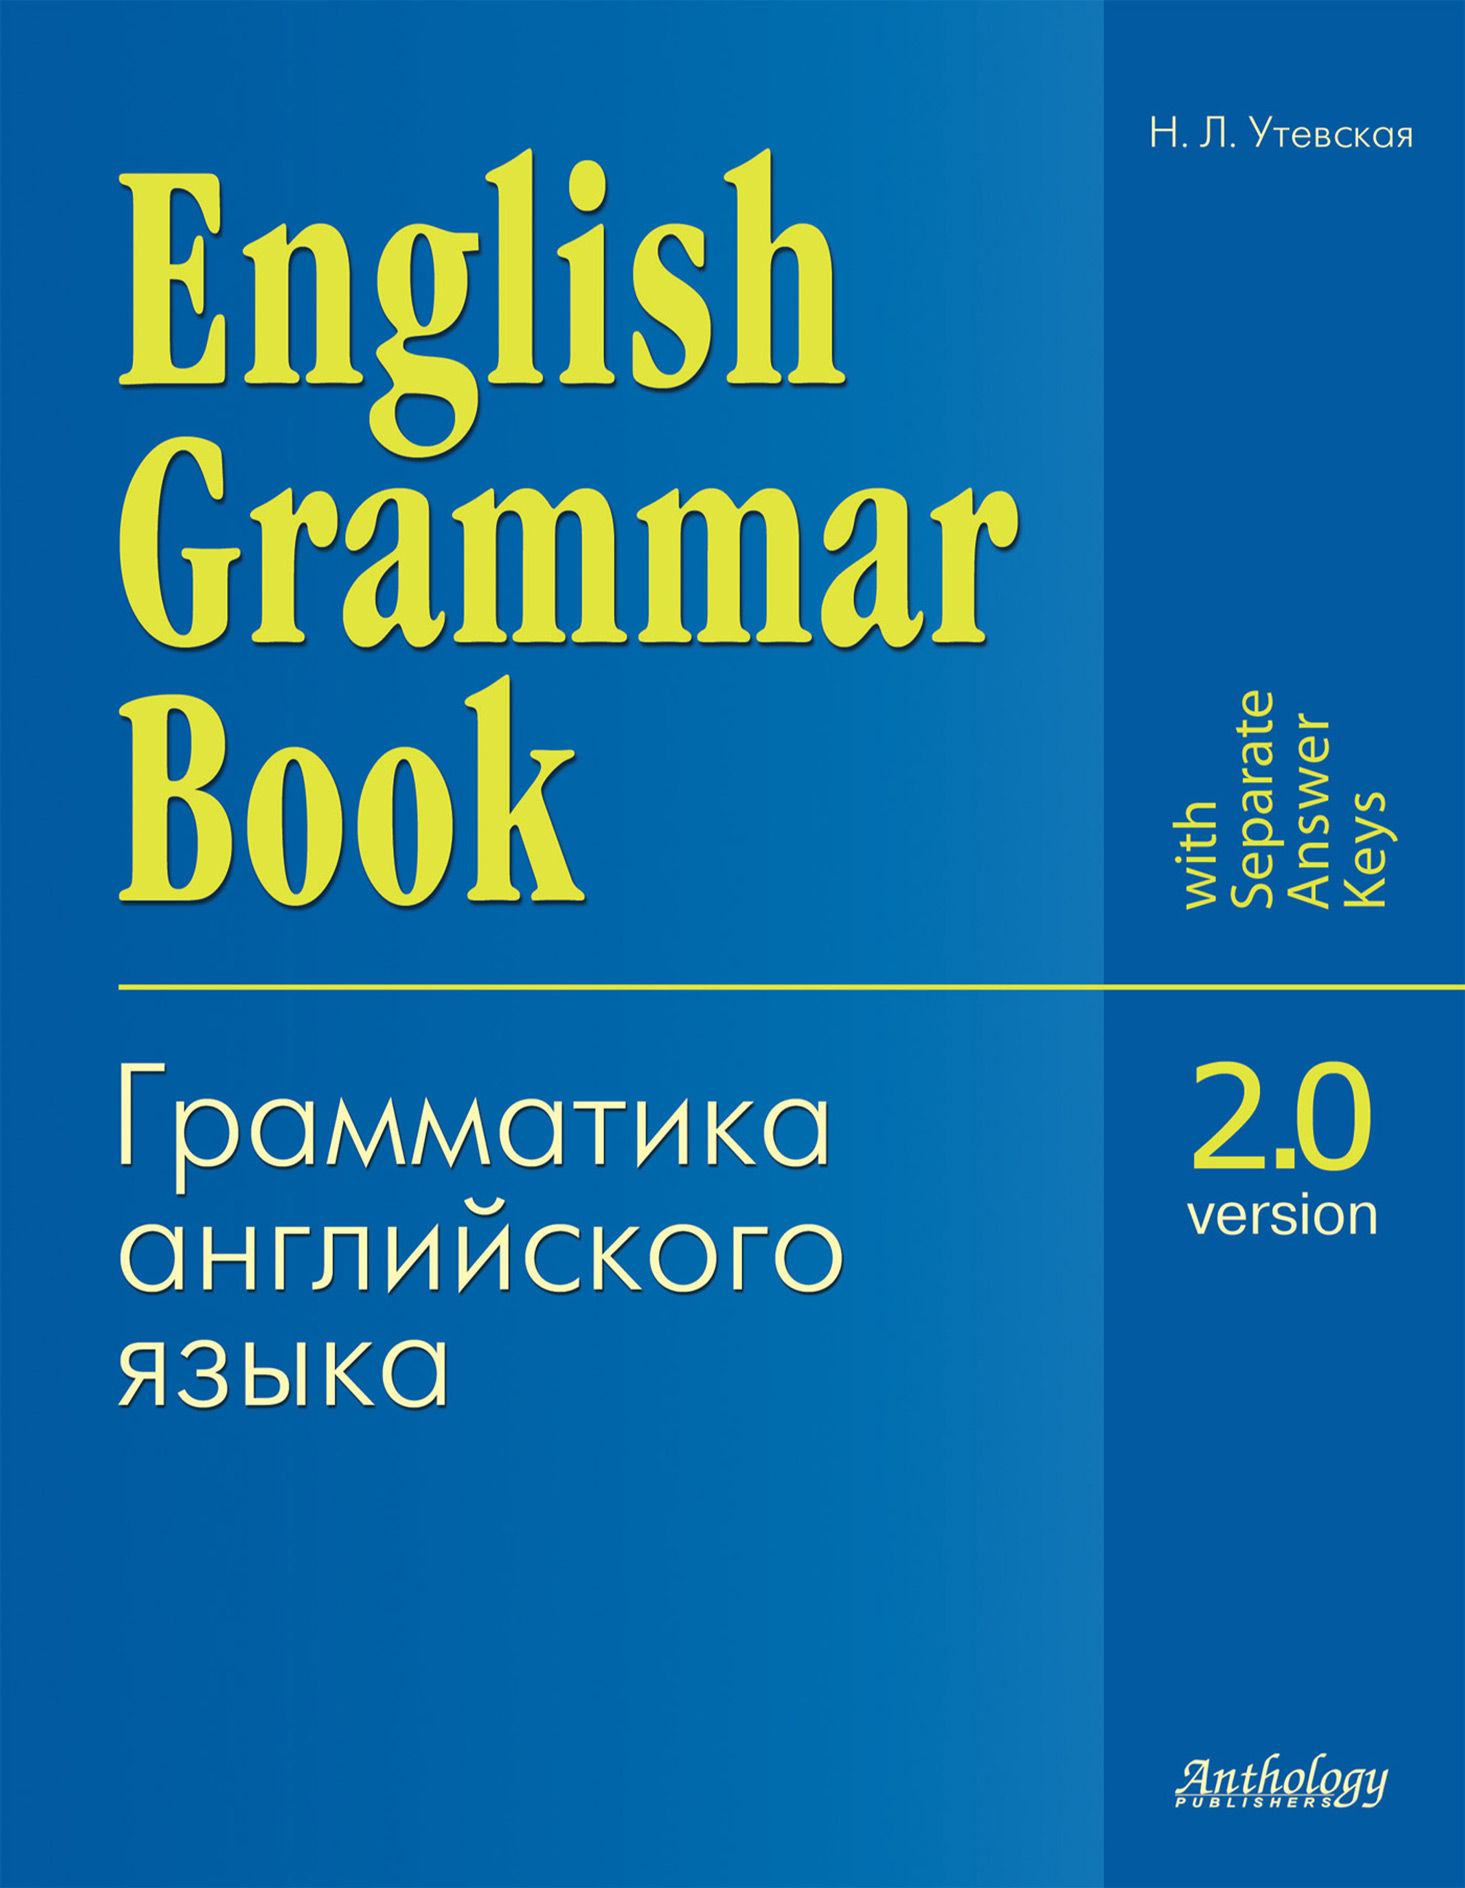 Н. Л. Утевская English Grammar Book. Version 2.0 (Грамматика английского языка. Версия 2.0). Учебное пособие учебное пособие по практической грамматике современного китайского языка